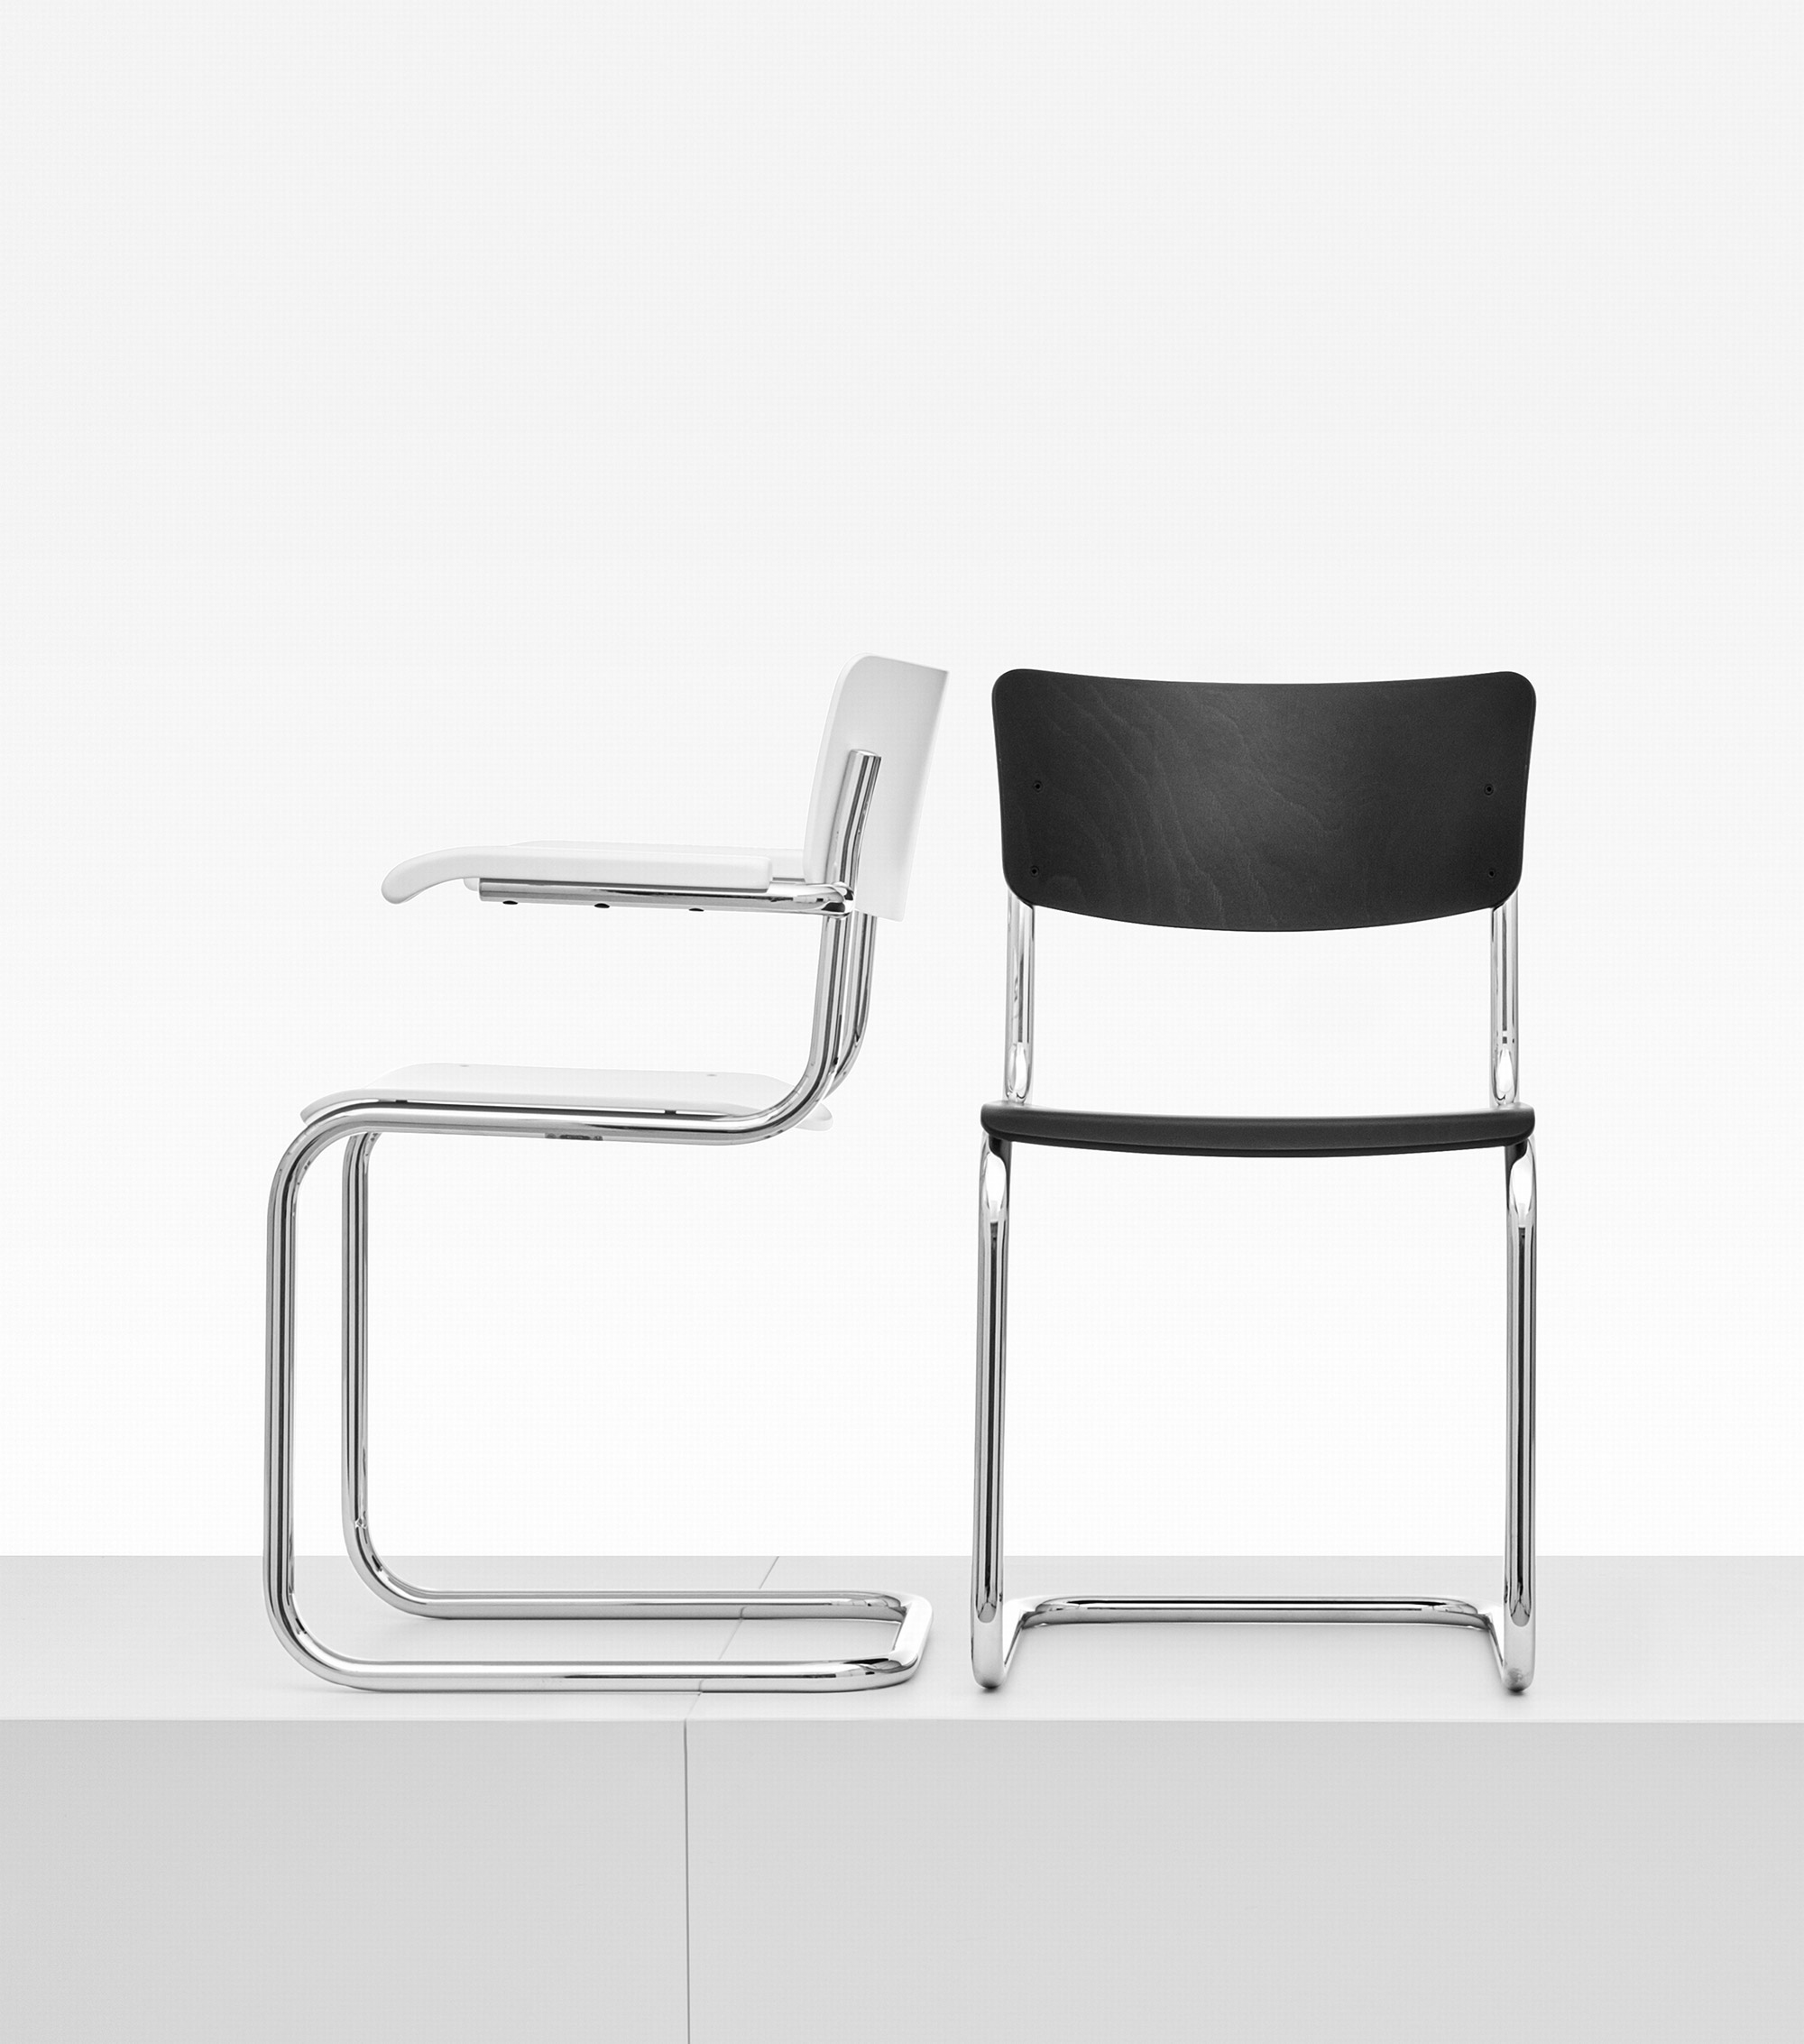 Iconic Bauhaus S 43 cantilever chair in chrome steel, black or white plywood seats